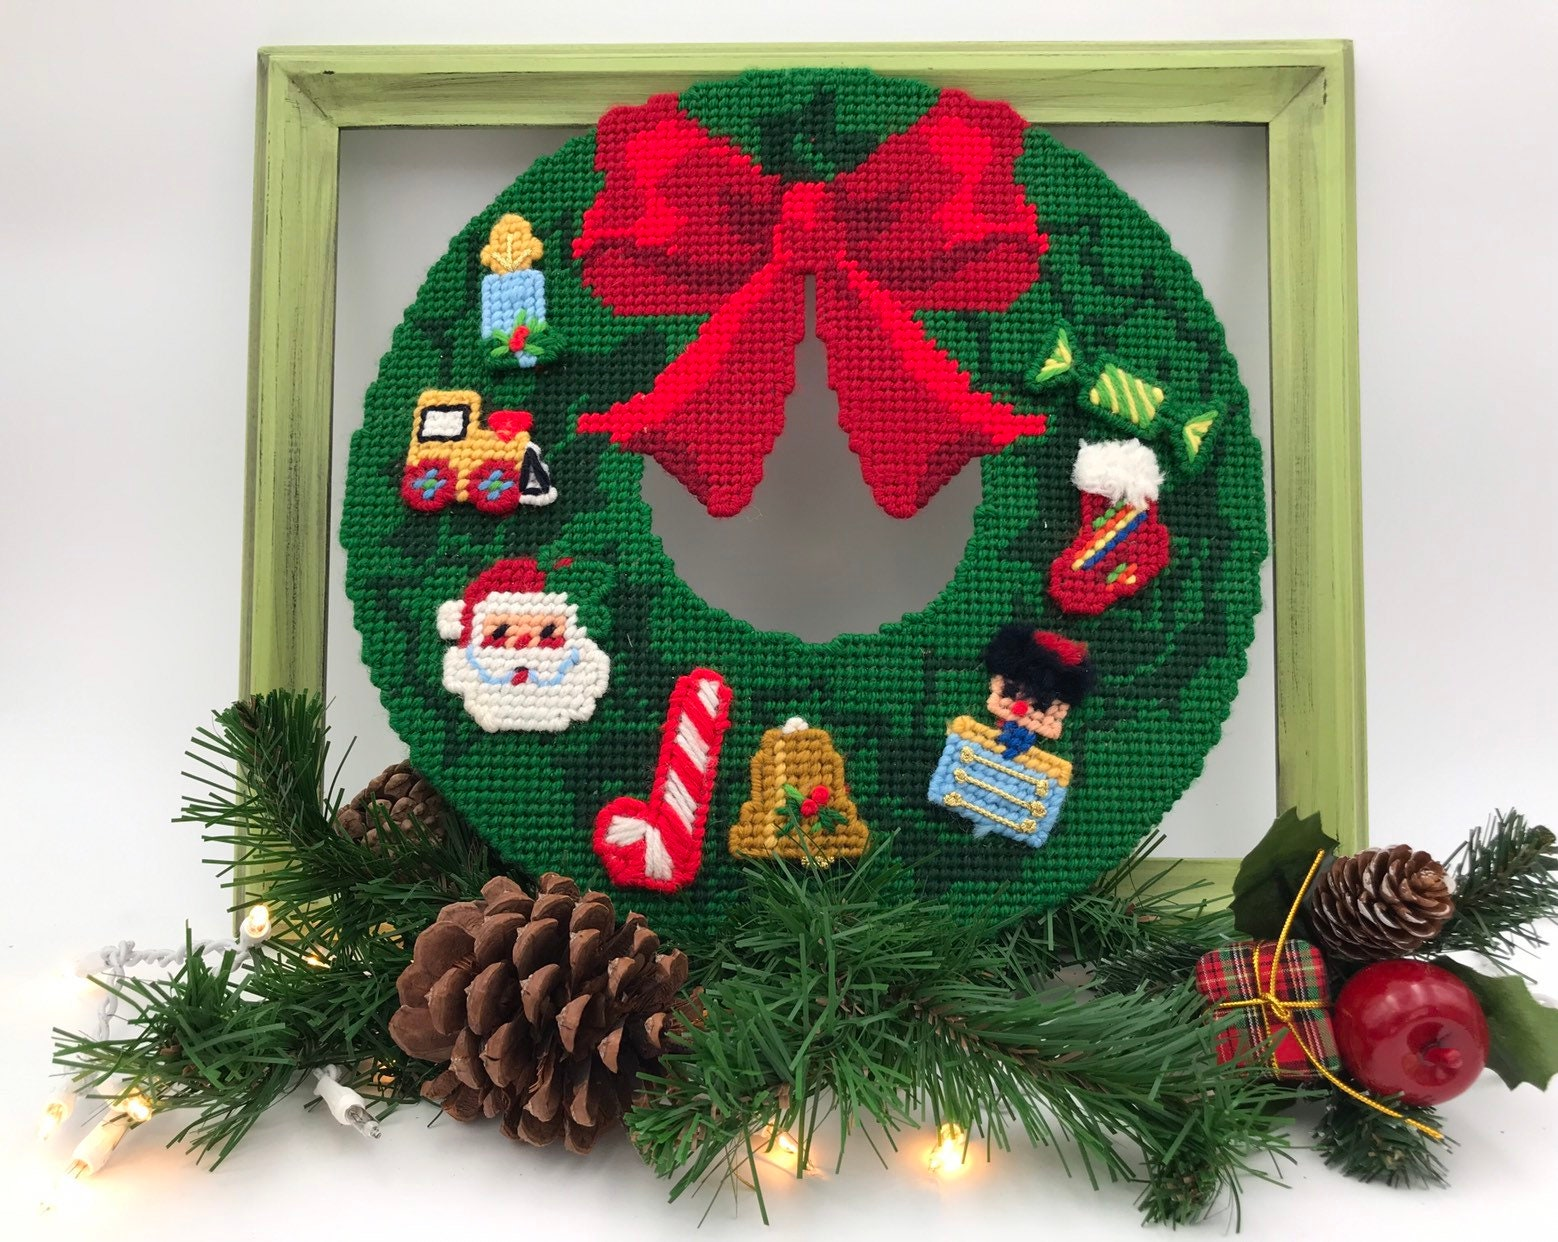 Country Christmas Background.Vintage Christmas Wreath Yarn Cross Stitch On Plastic Red Bow